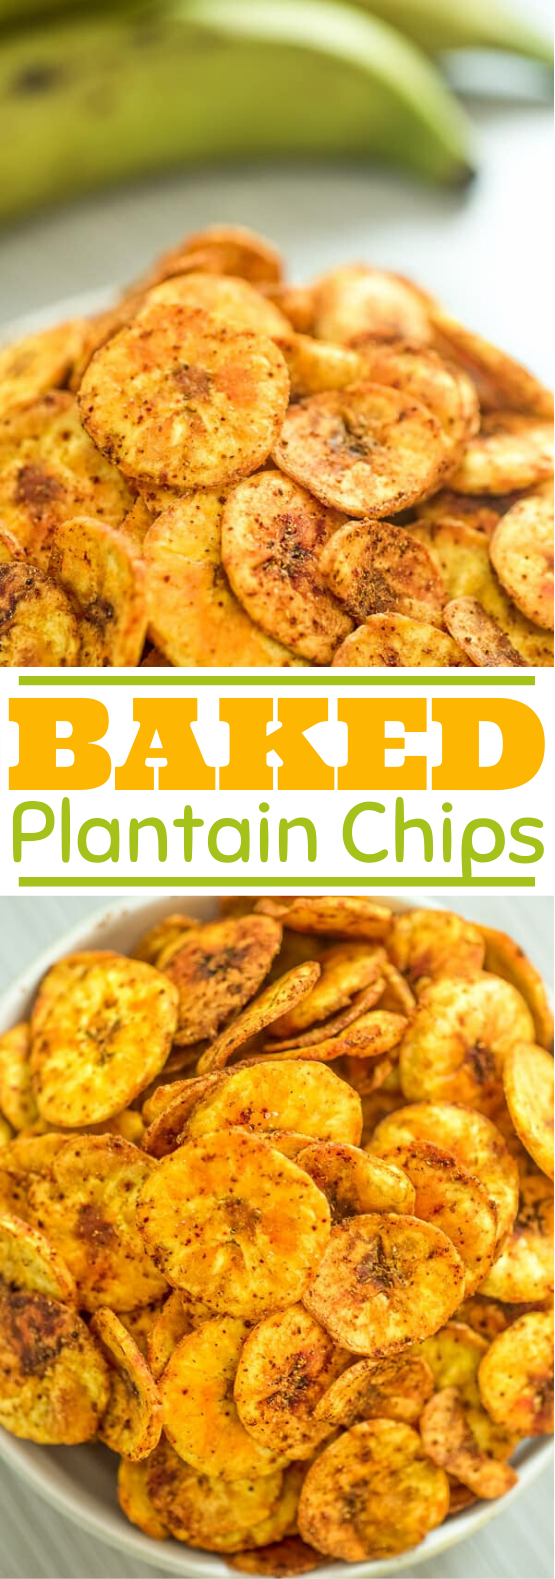 Baked Plantain Chips #healthy #snacks #lowcarb #glutenfree #keto